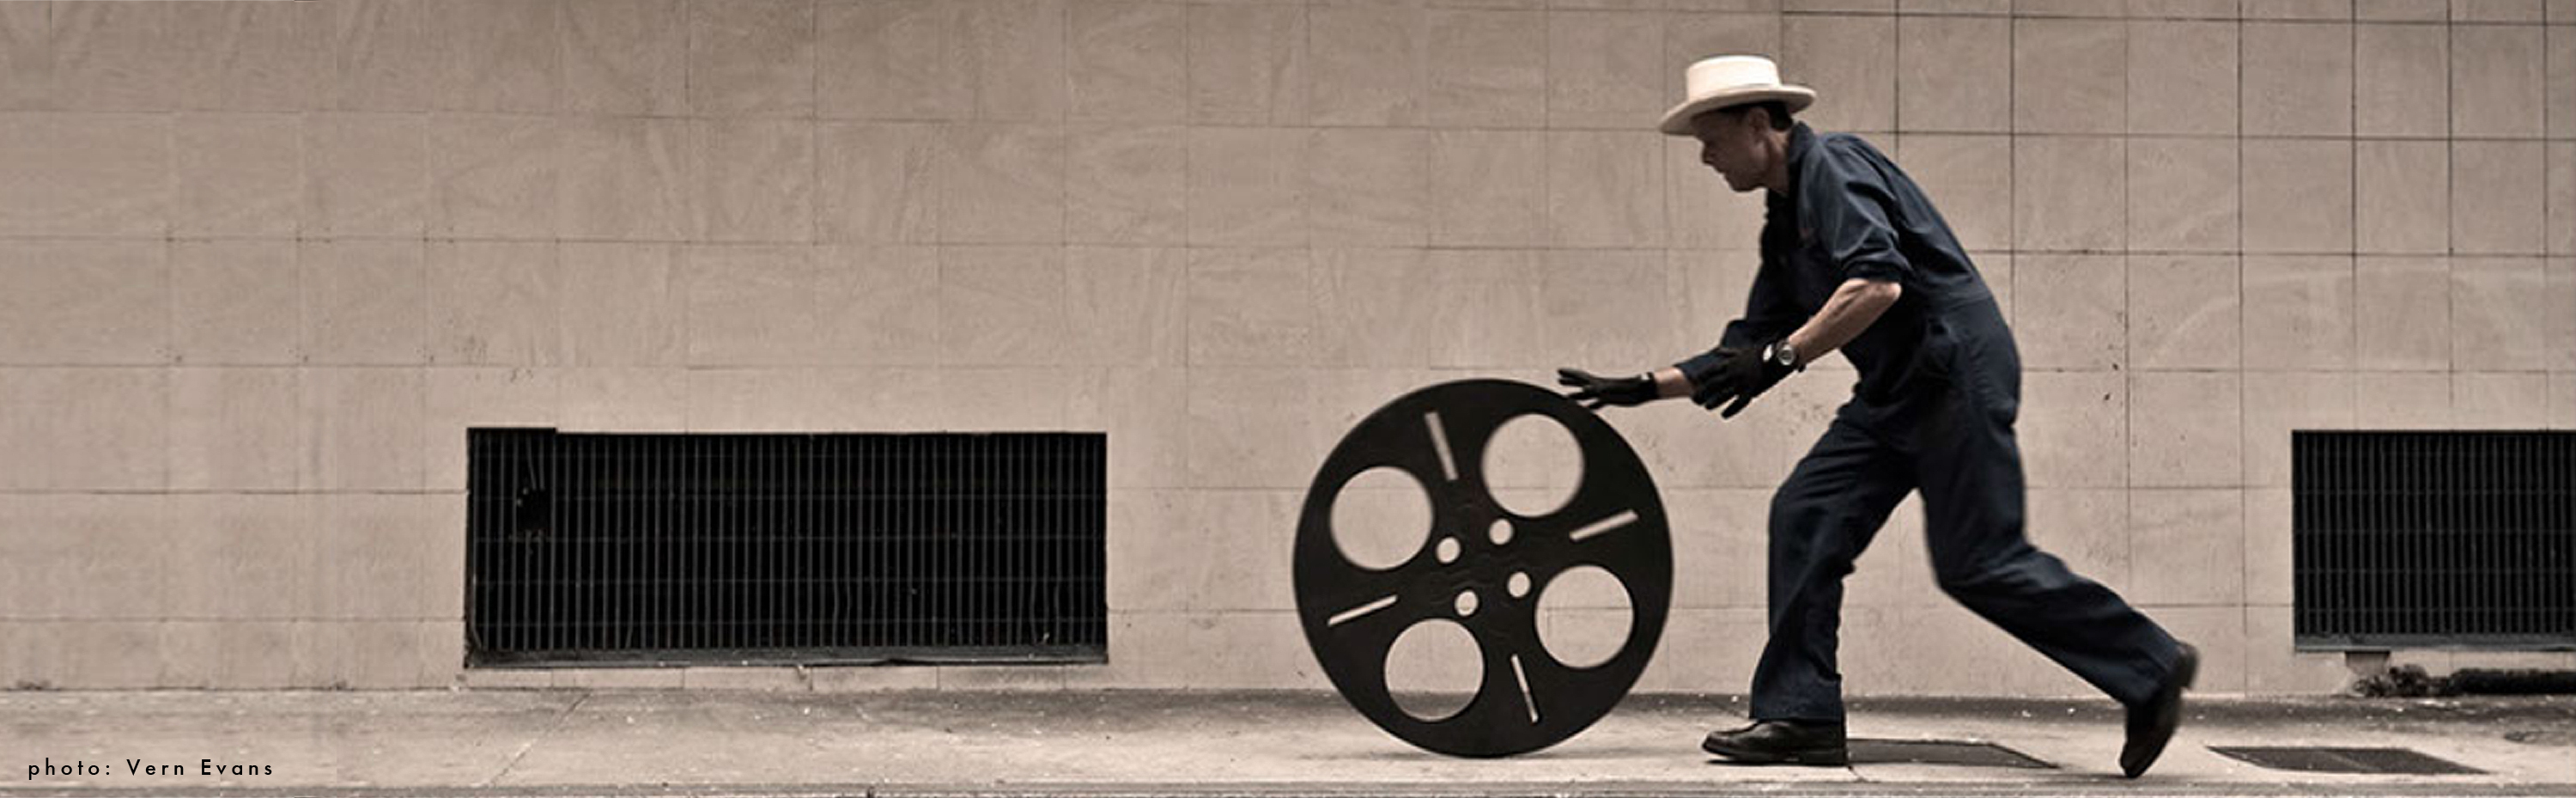 Photo of Carlos Grasso of Dumfuxx rolling a big film reel.